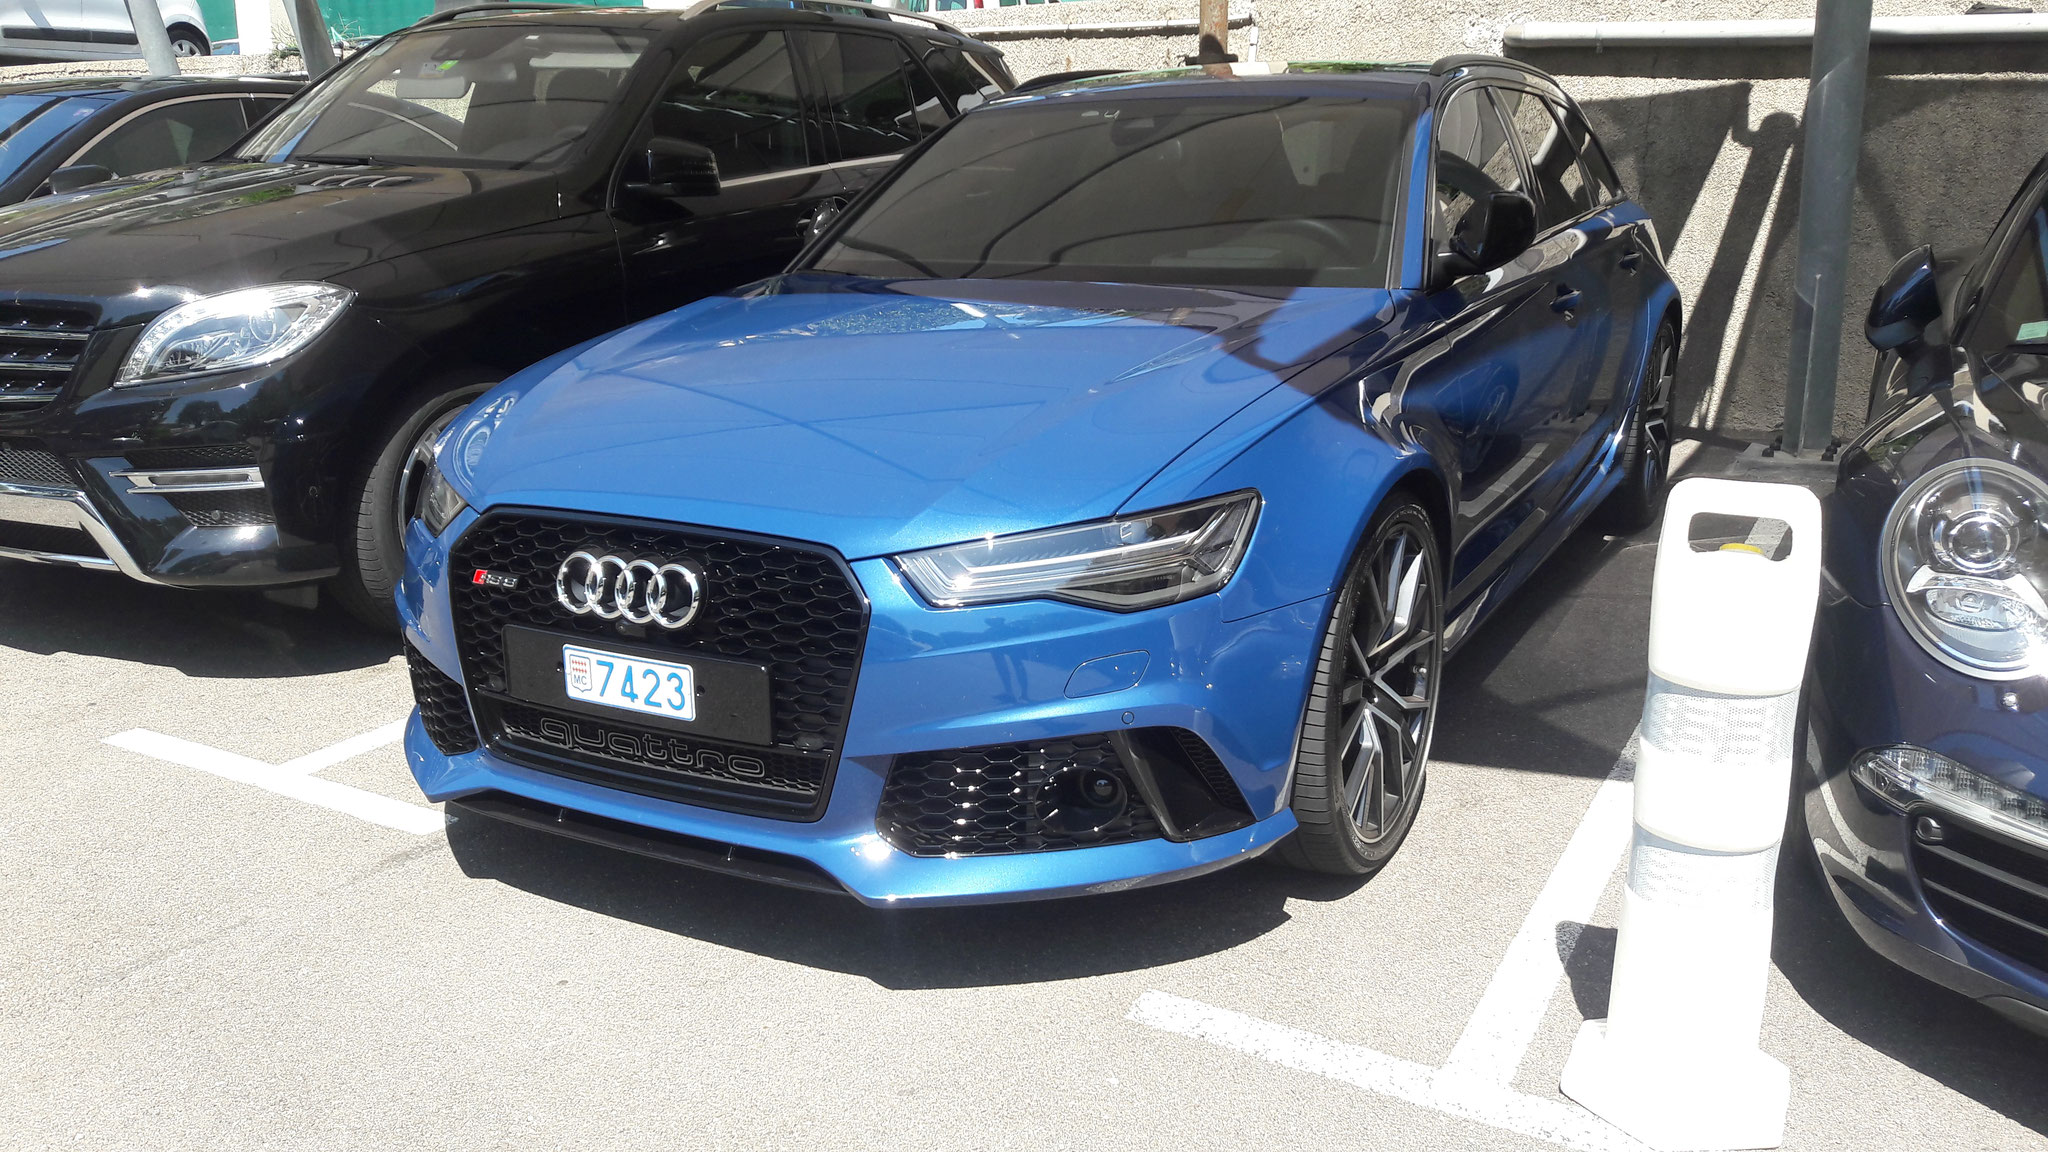 Audi RS6 Performance Nogaro Edition - 7432 (MC)